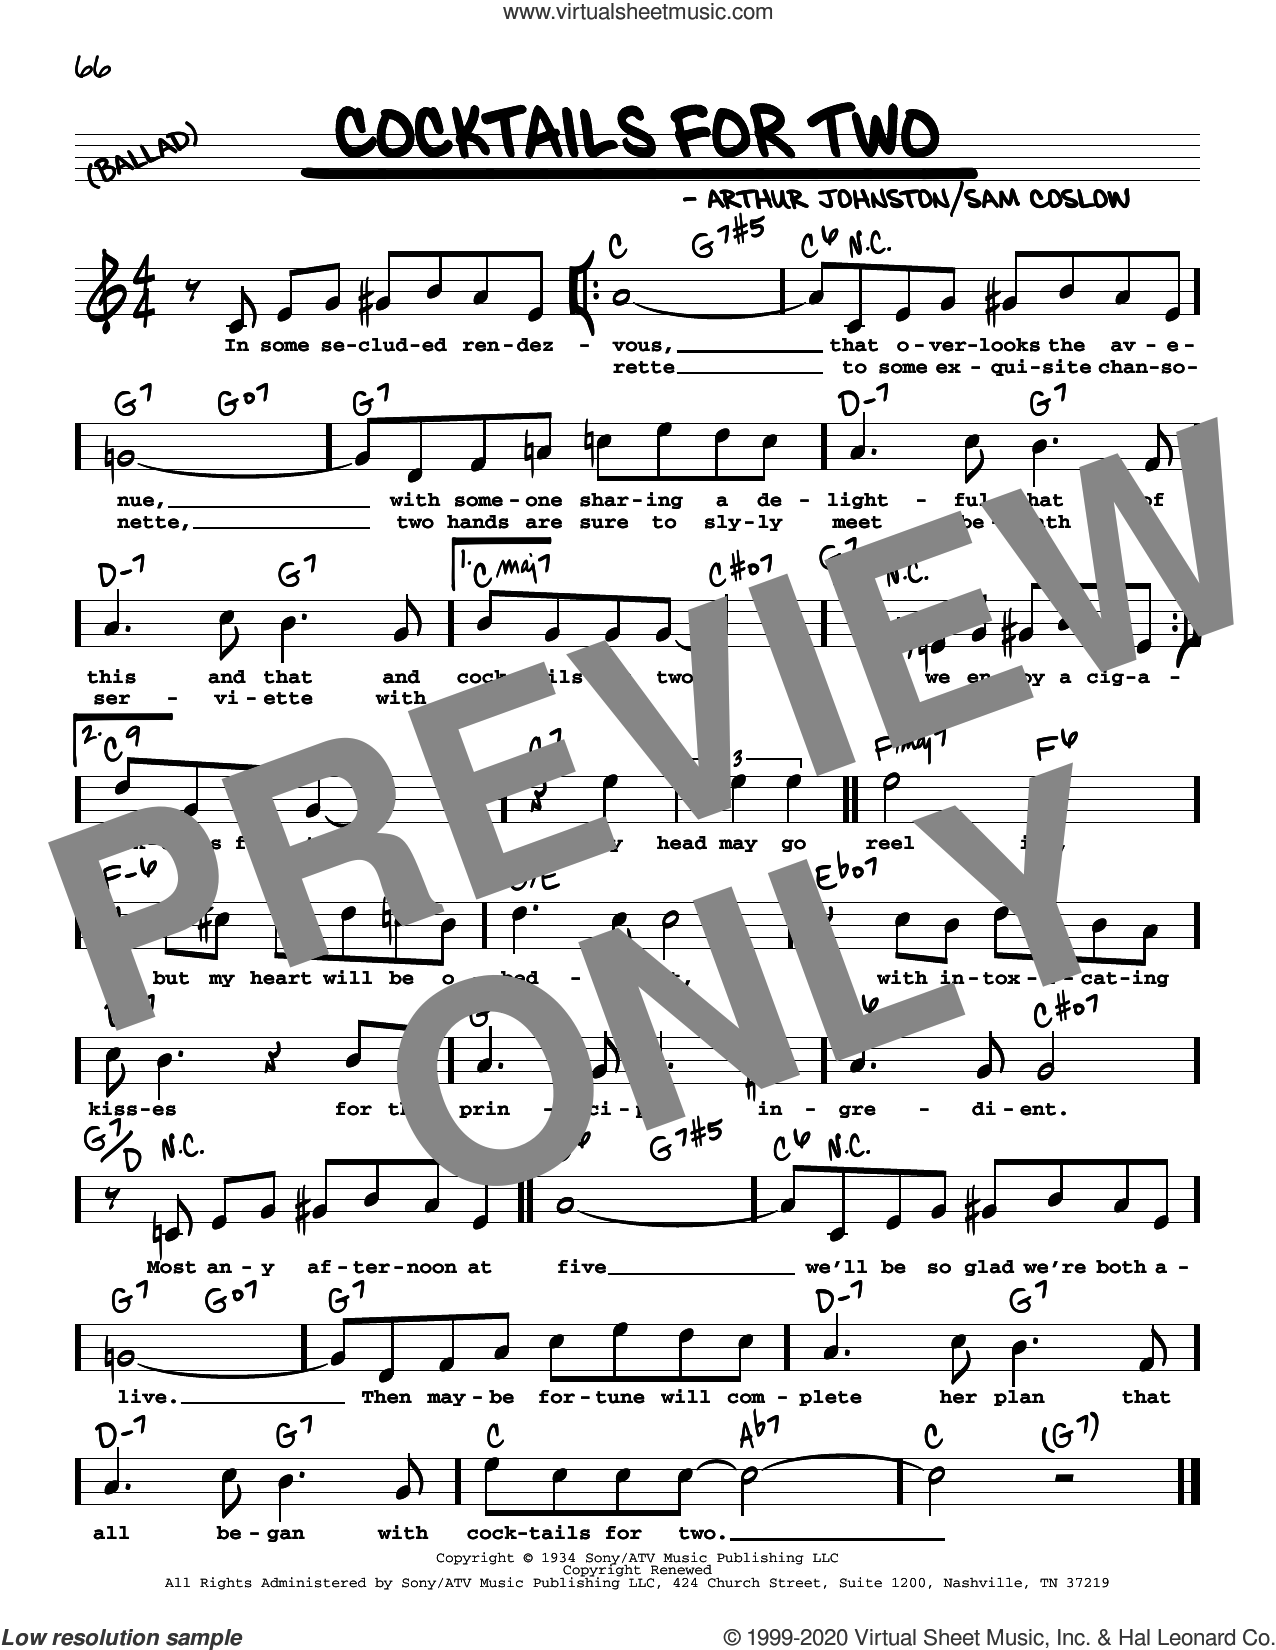 Cocktails For Two (High Voice) sheet music for voice and other instruments (real book with lyrics) by Arthur Johnston, Carl Brisson, Miriam Hopkins and Sam Coslow, intermediate skill level